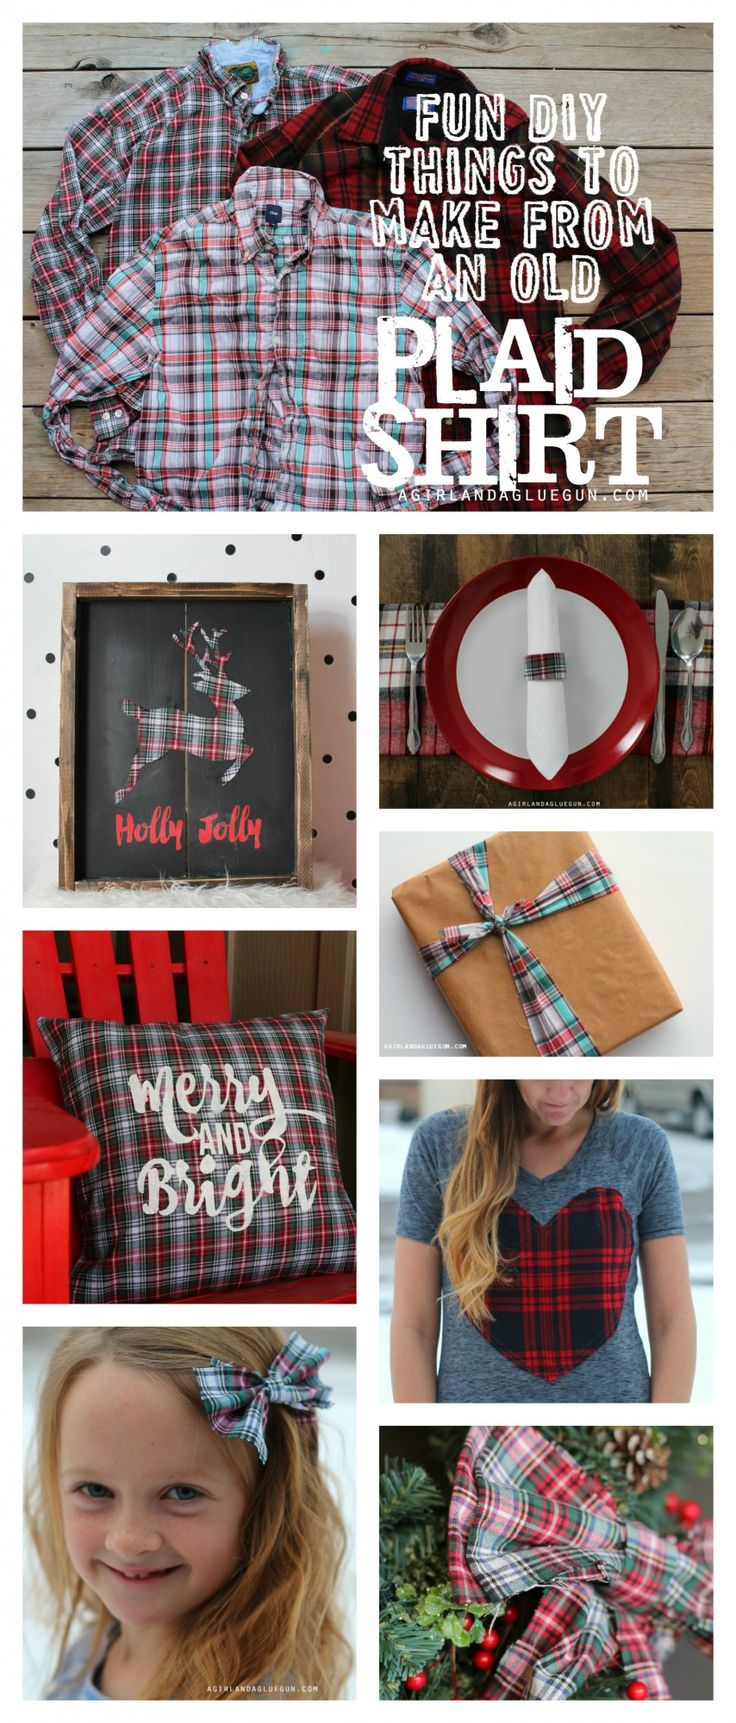 Hurry and go buy all the plaid shirts you can find at the thrift store to rereat these  fun diy things to make from an old plaid shirt--a girl and a glue gun